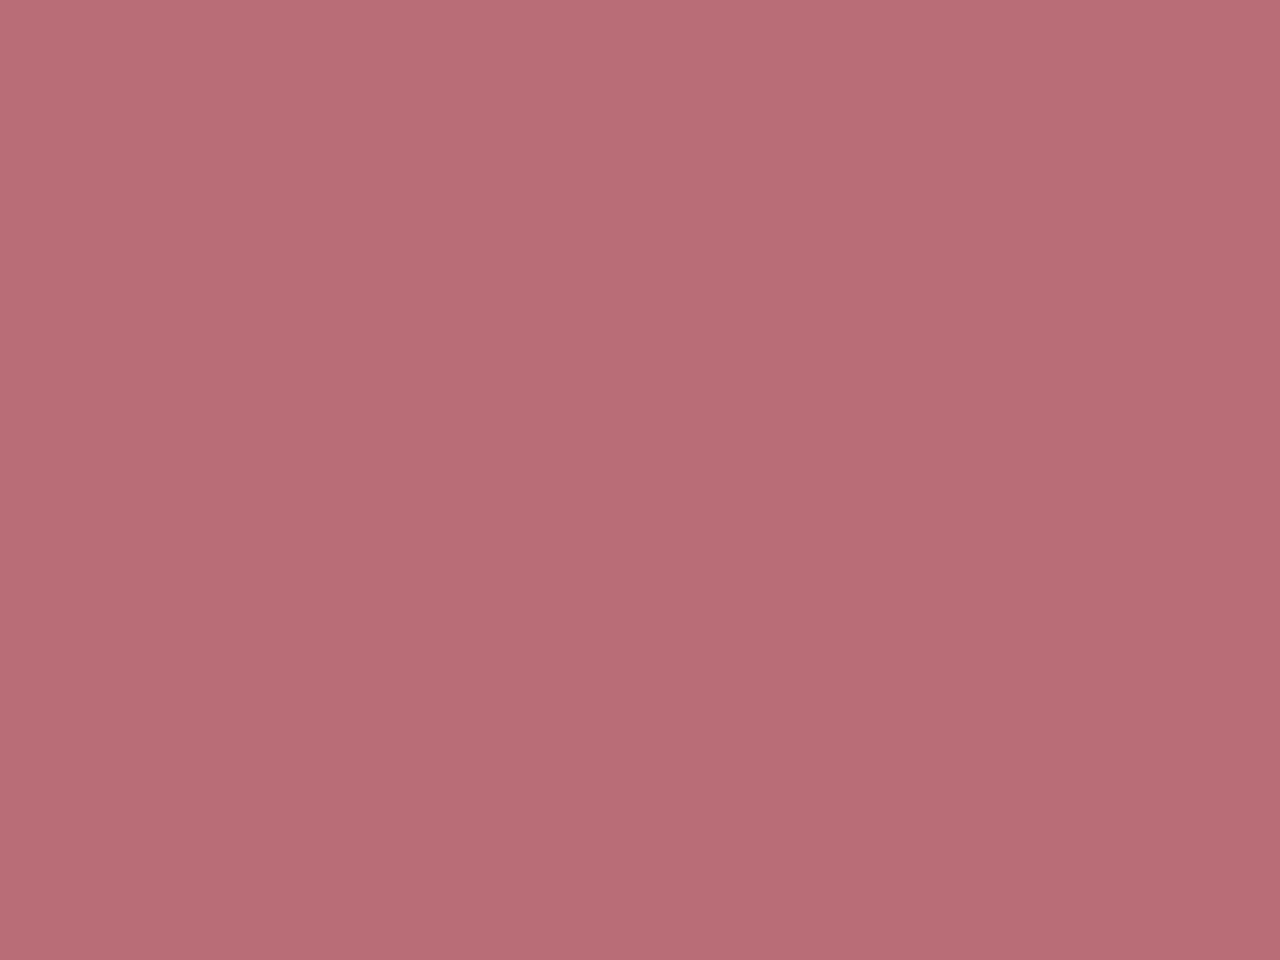 1280x960 Rose Gold Solid Color Background